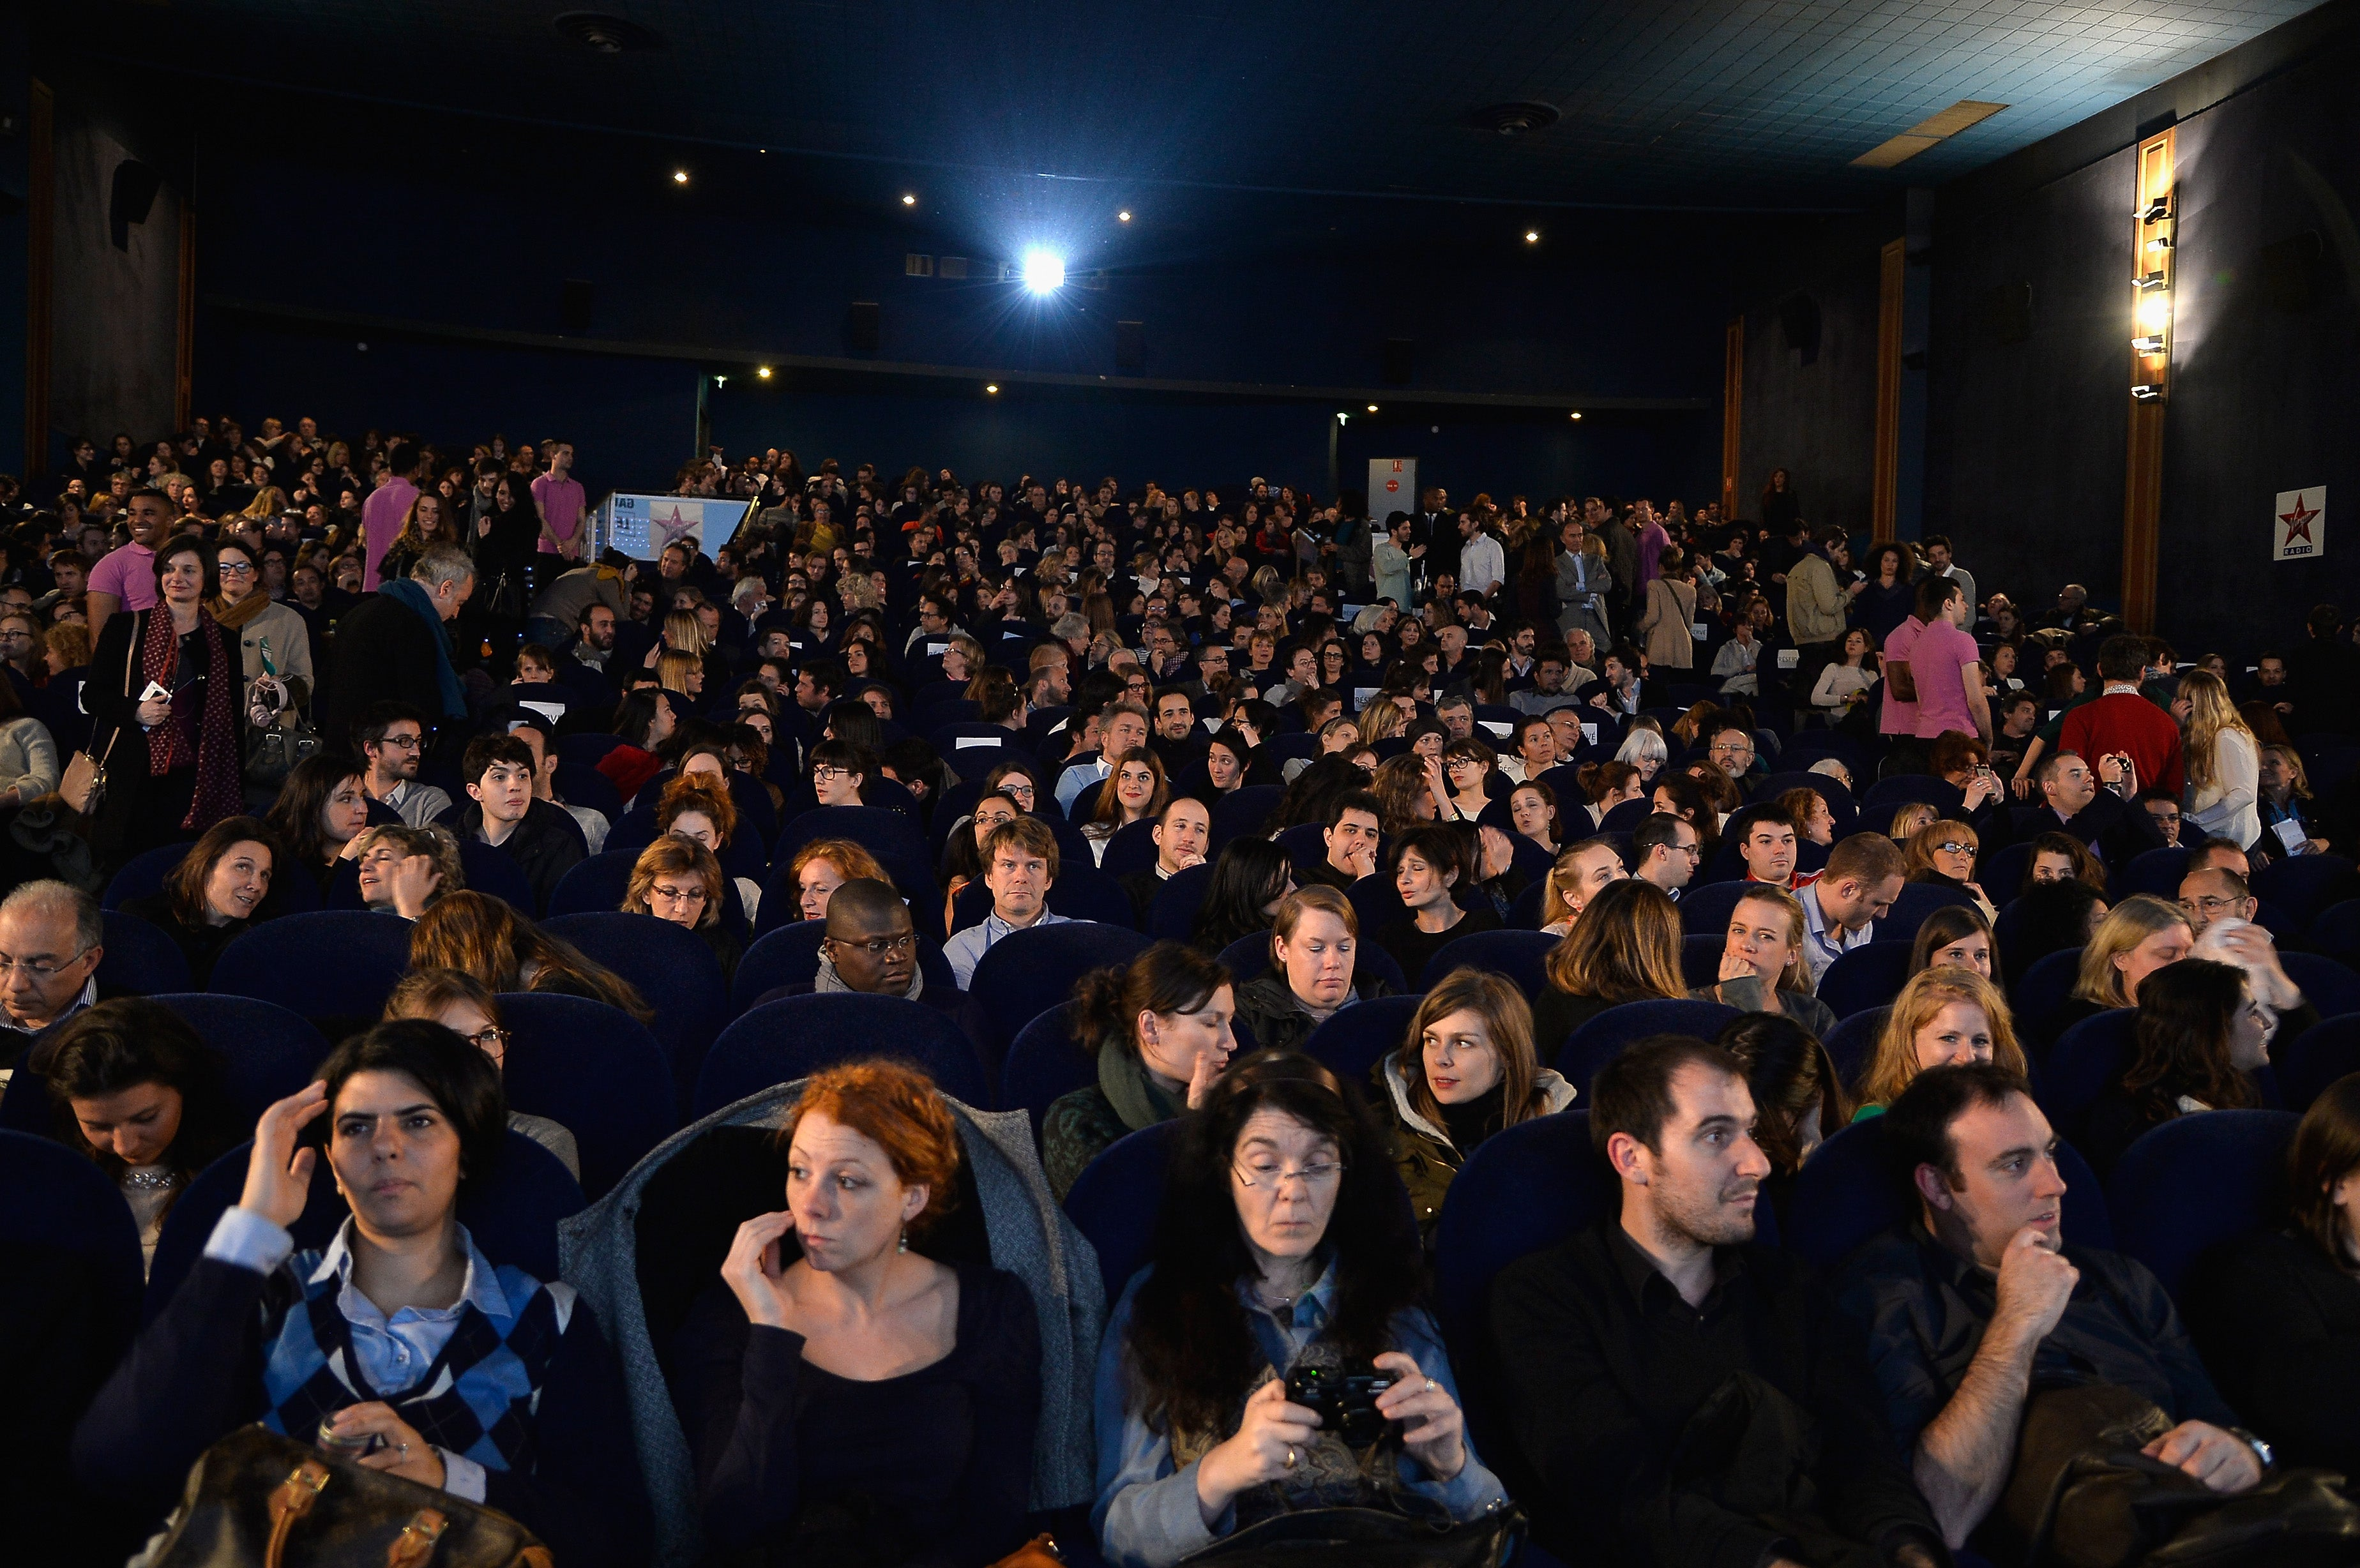 Audience watching a film